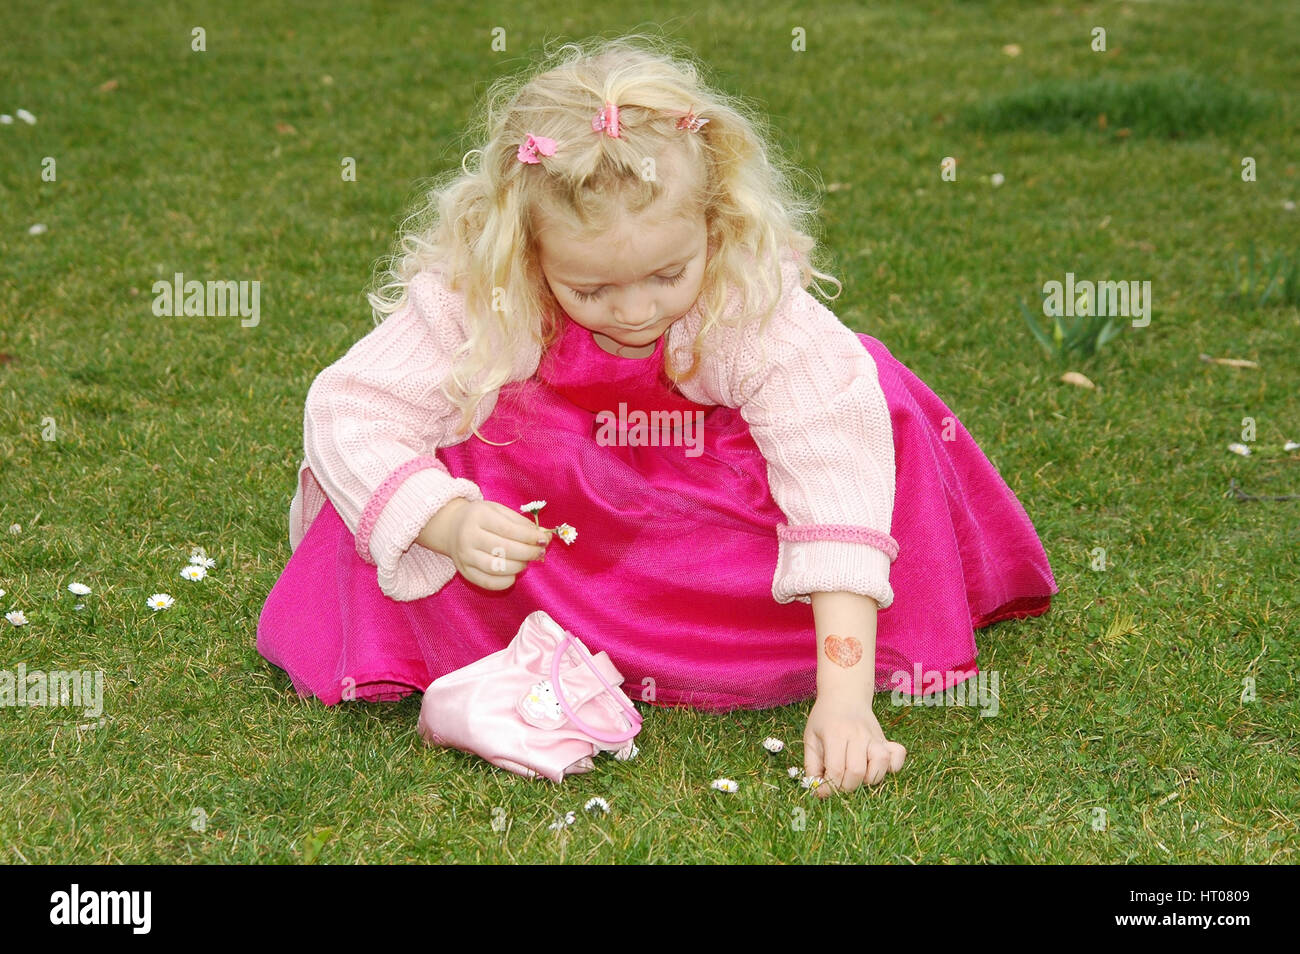 Maedchen pflueckt Gaensebluemchen in der Wiese - girl plucks daisies in meadow Stock Photo